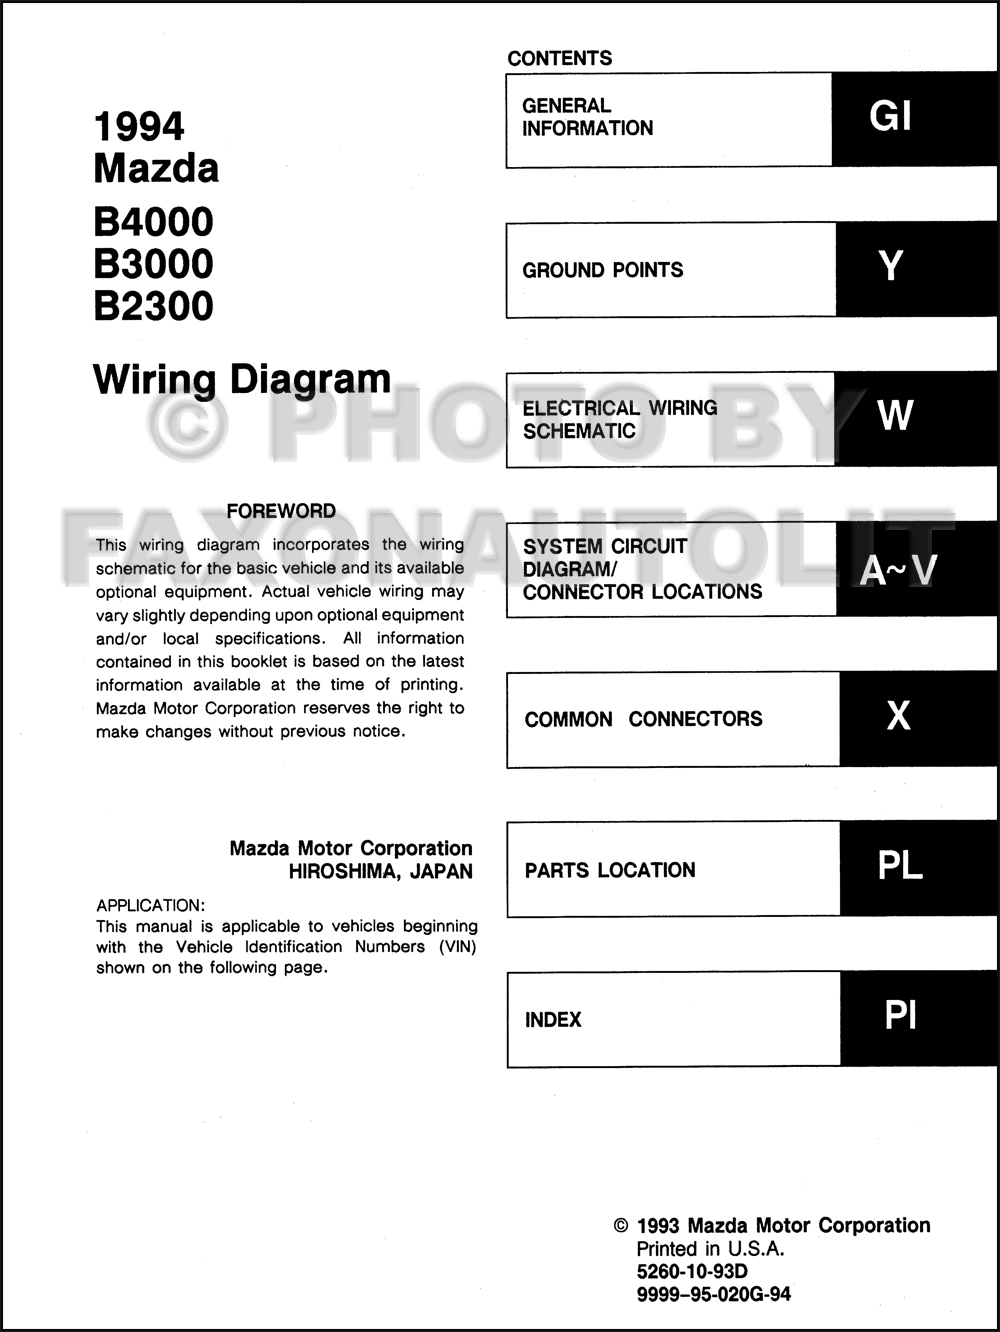 1994MazdaB4000B3000B23000OWD TOC 1994 mazda b4000 b3000 b2300 pickup truck wiring diagram manual 99 Mazda B4000 Fuse Diagram at bayanpartner.co